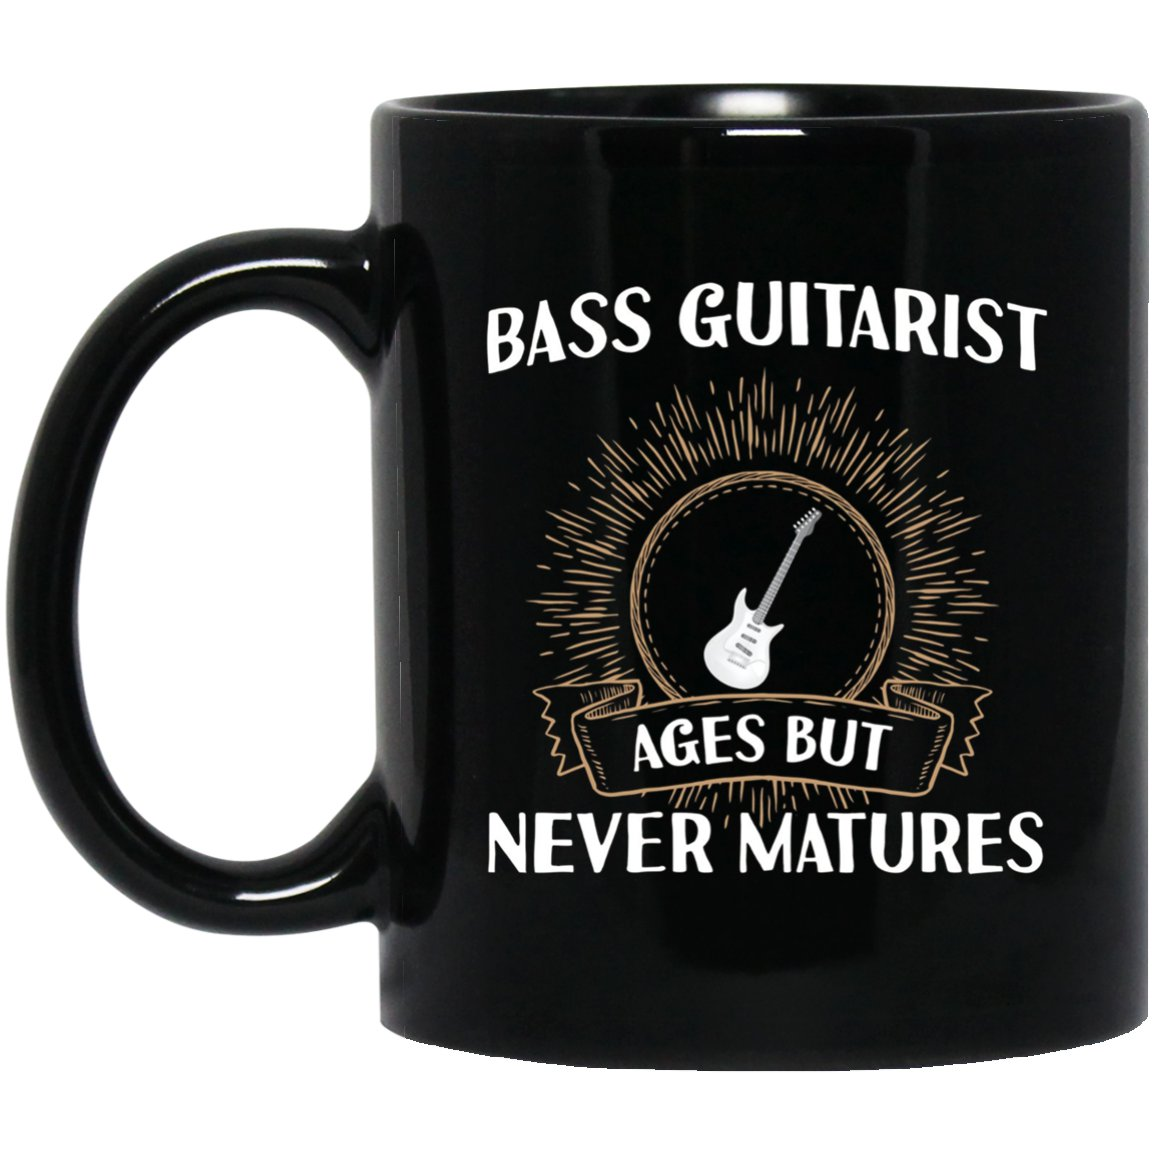 Bass Guitarist Ages but Never Matures Musician Black  Mug Black Ceramic 11oz Coffee Tea Cup